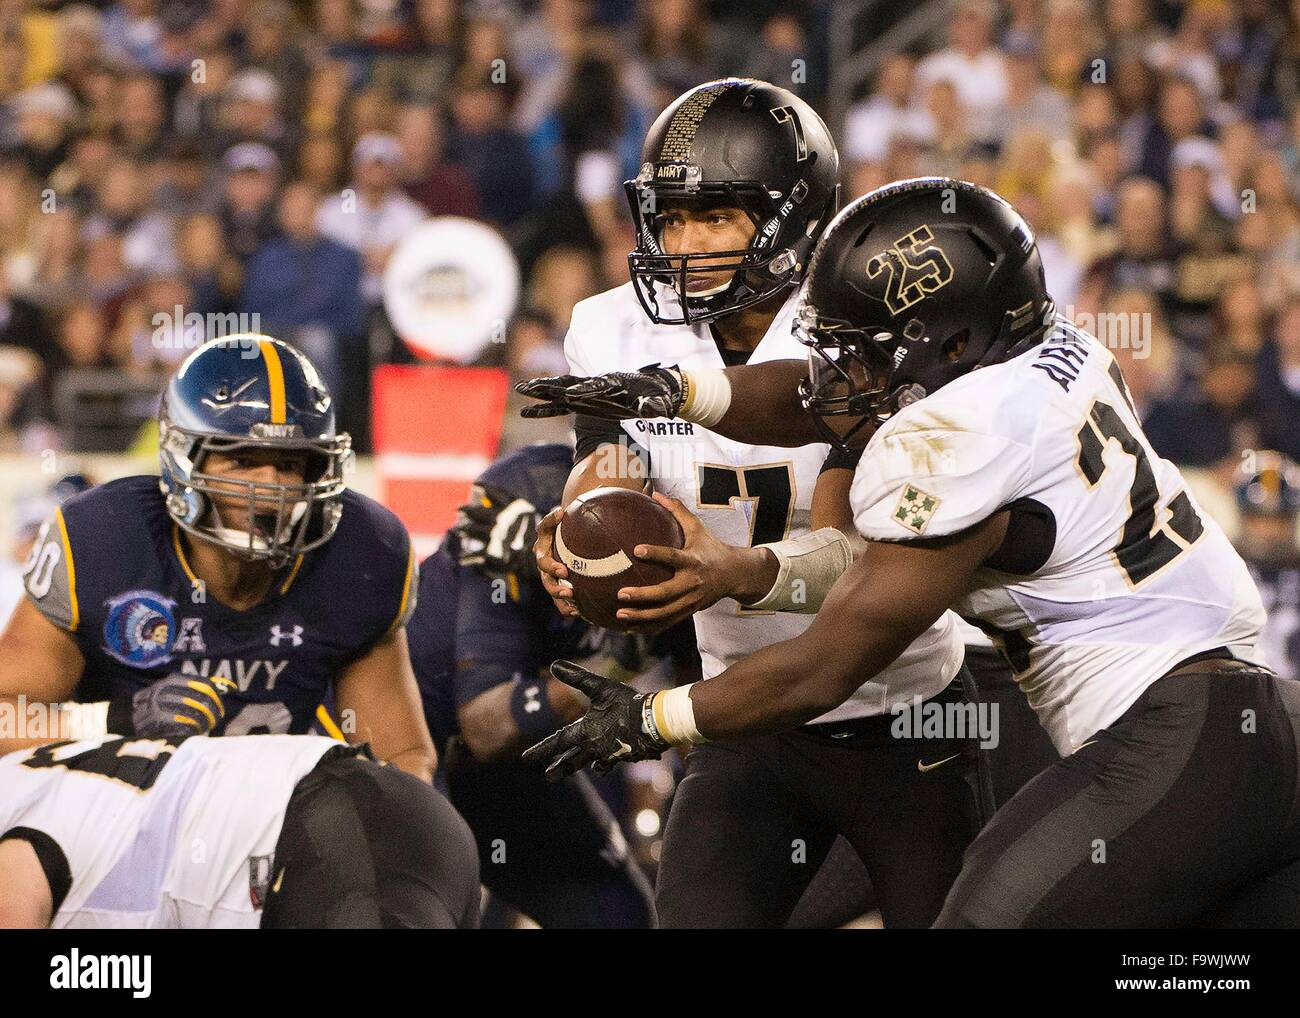 Army Black Knights quarterback Chris Carter (7) hands the ball off to running back Aaron Kemper (25) during the - Stock Image